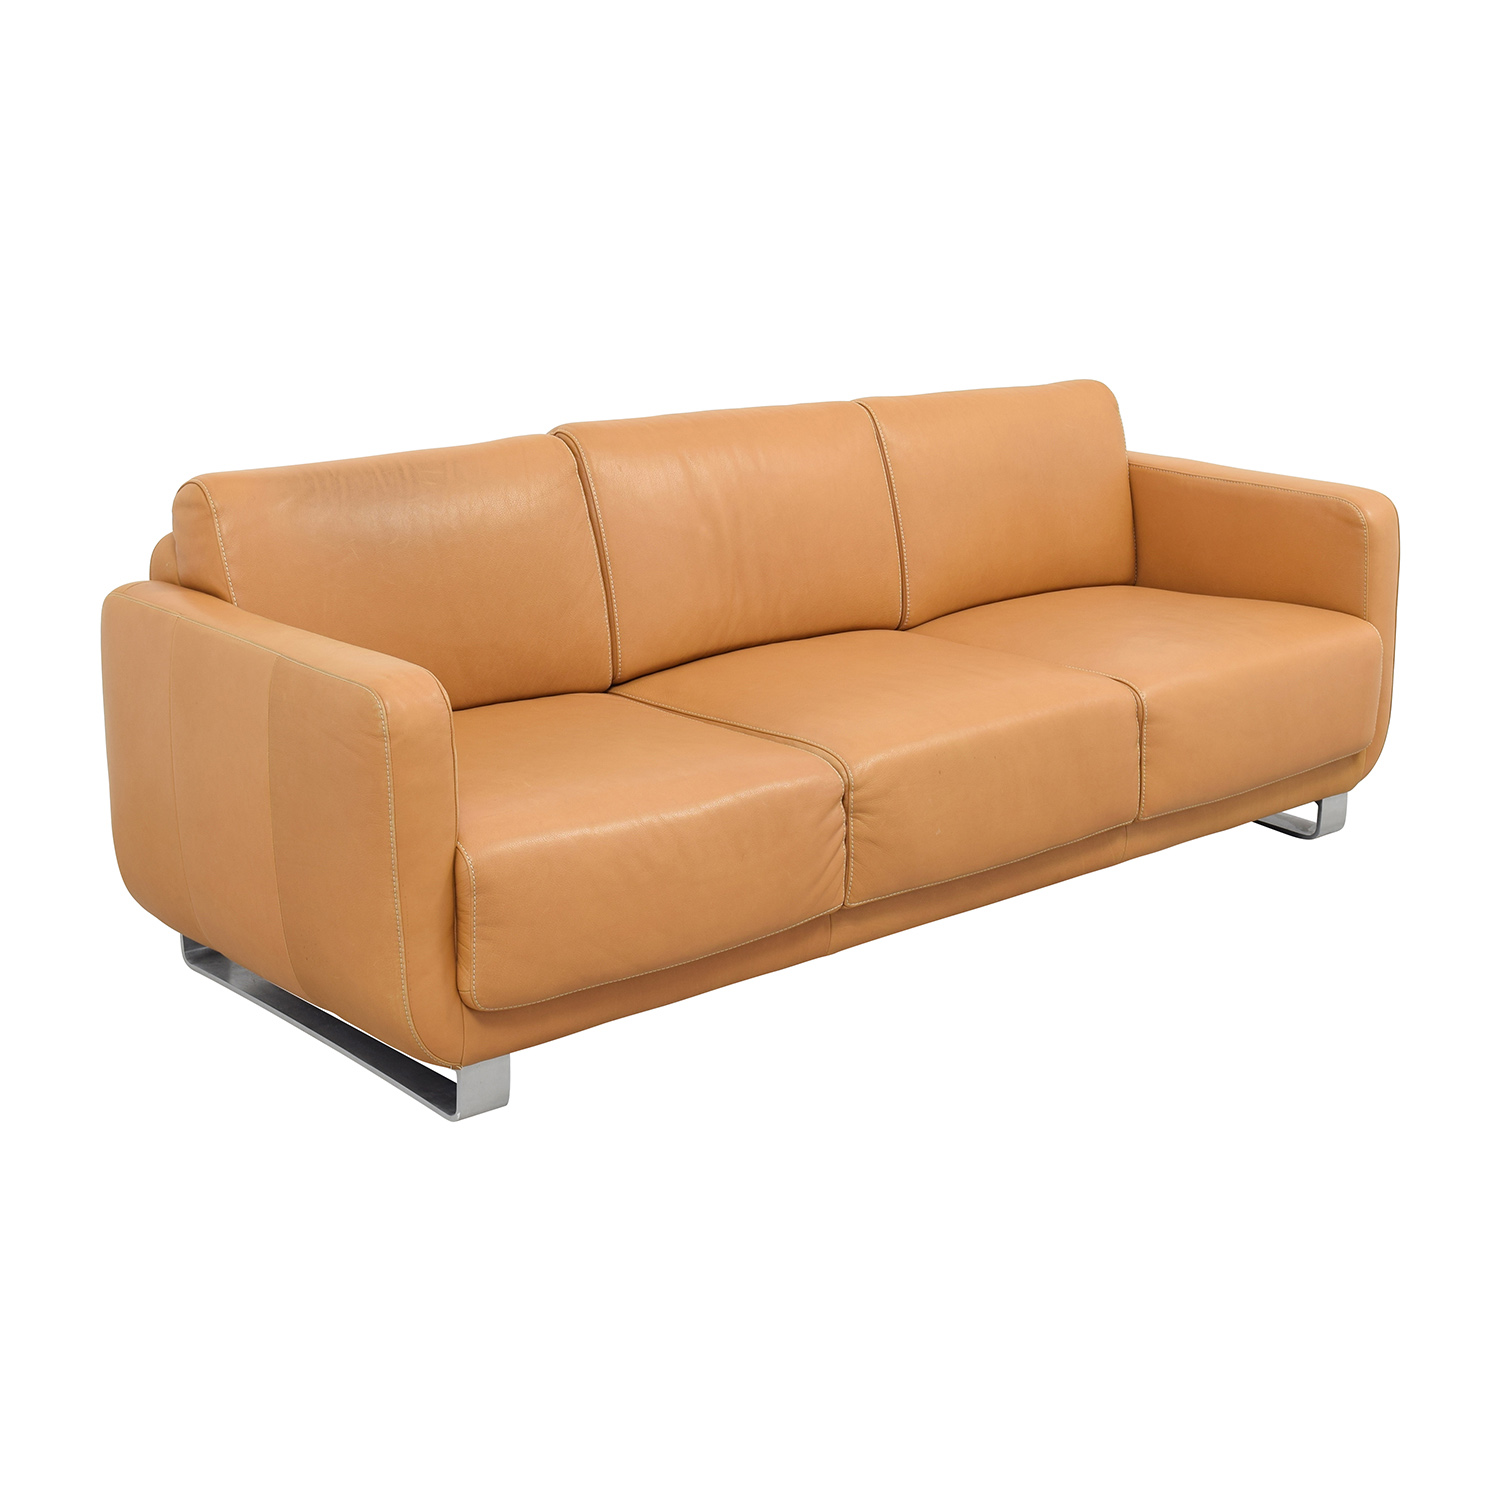 74 off w schillig w schillig light brown leather sofa. Black Bedroom Furniture Sets. Home Design Ideas